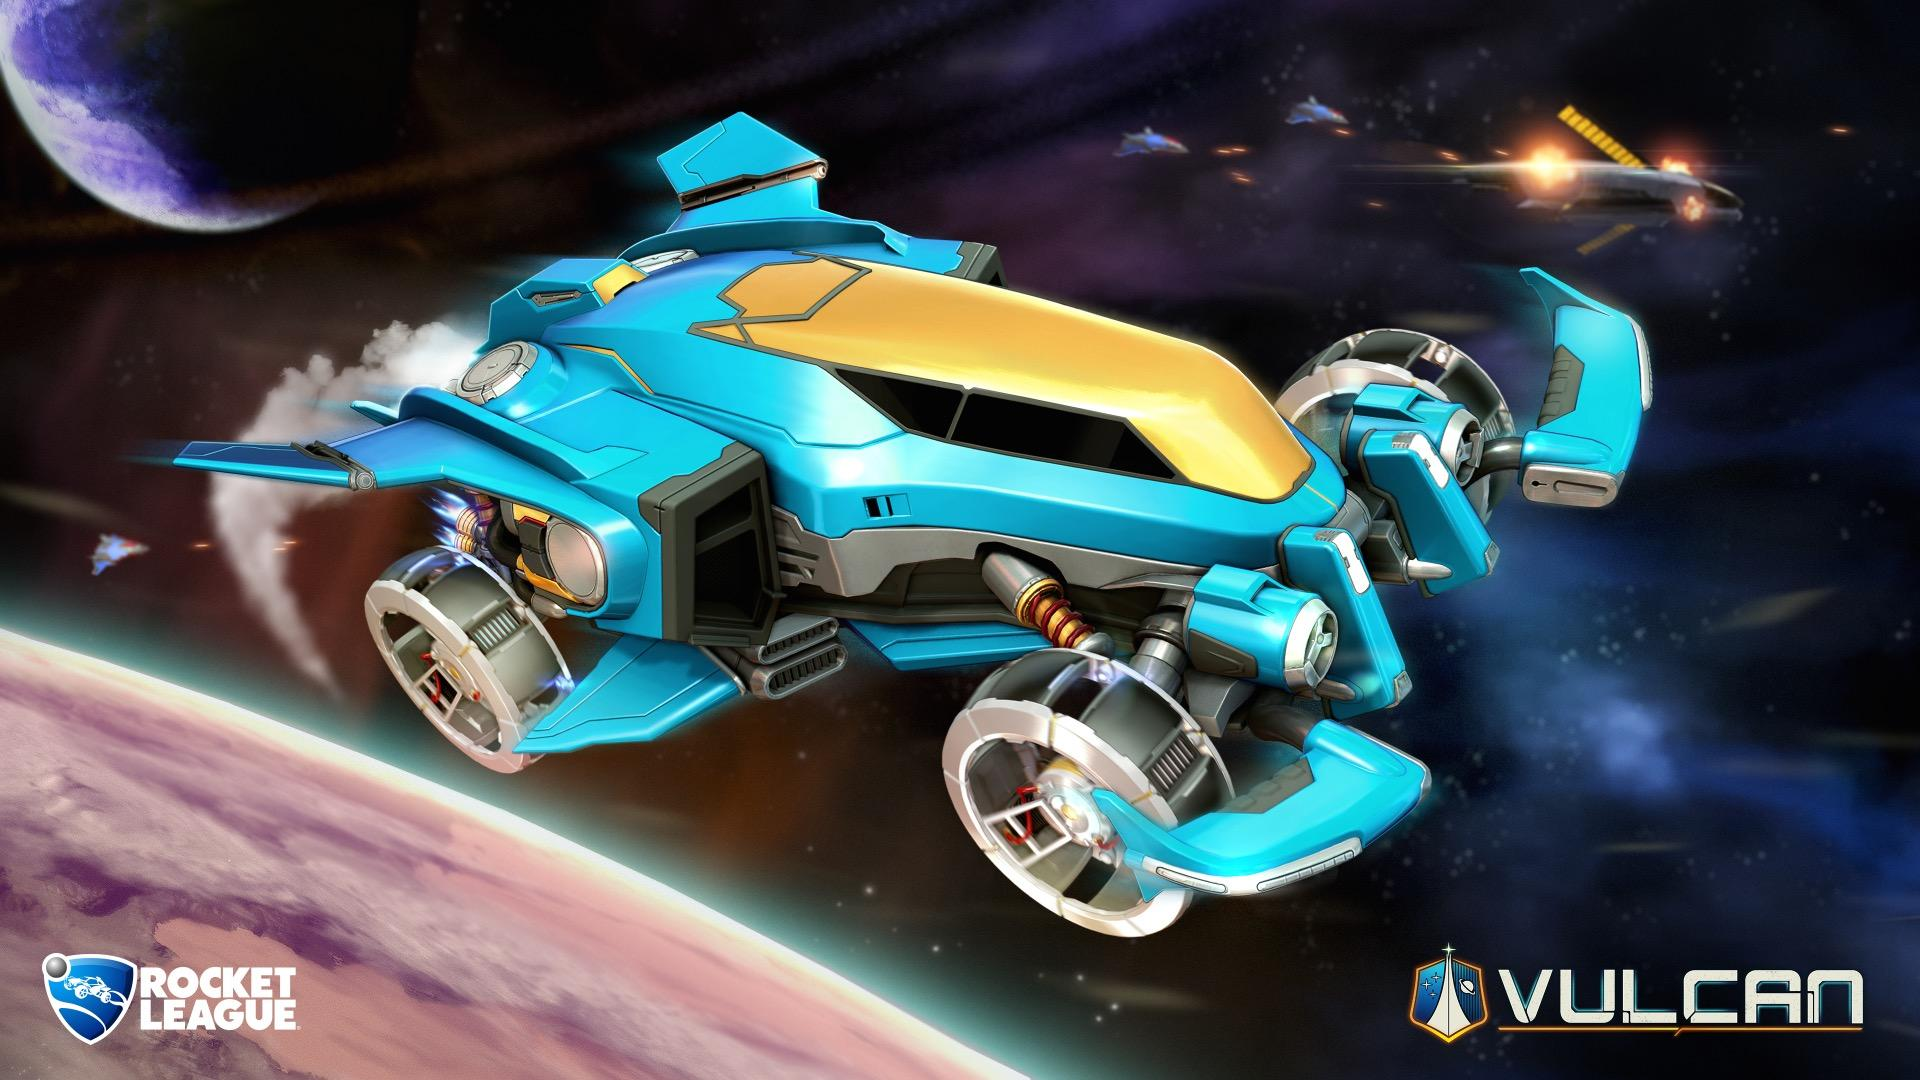 New Rocket League Space-Themed Content Coming Next Week